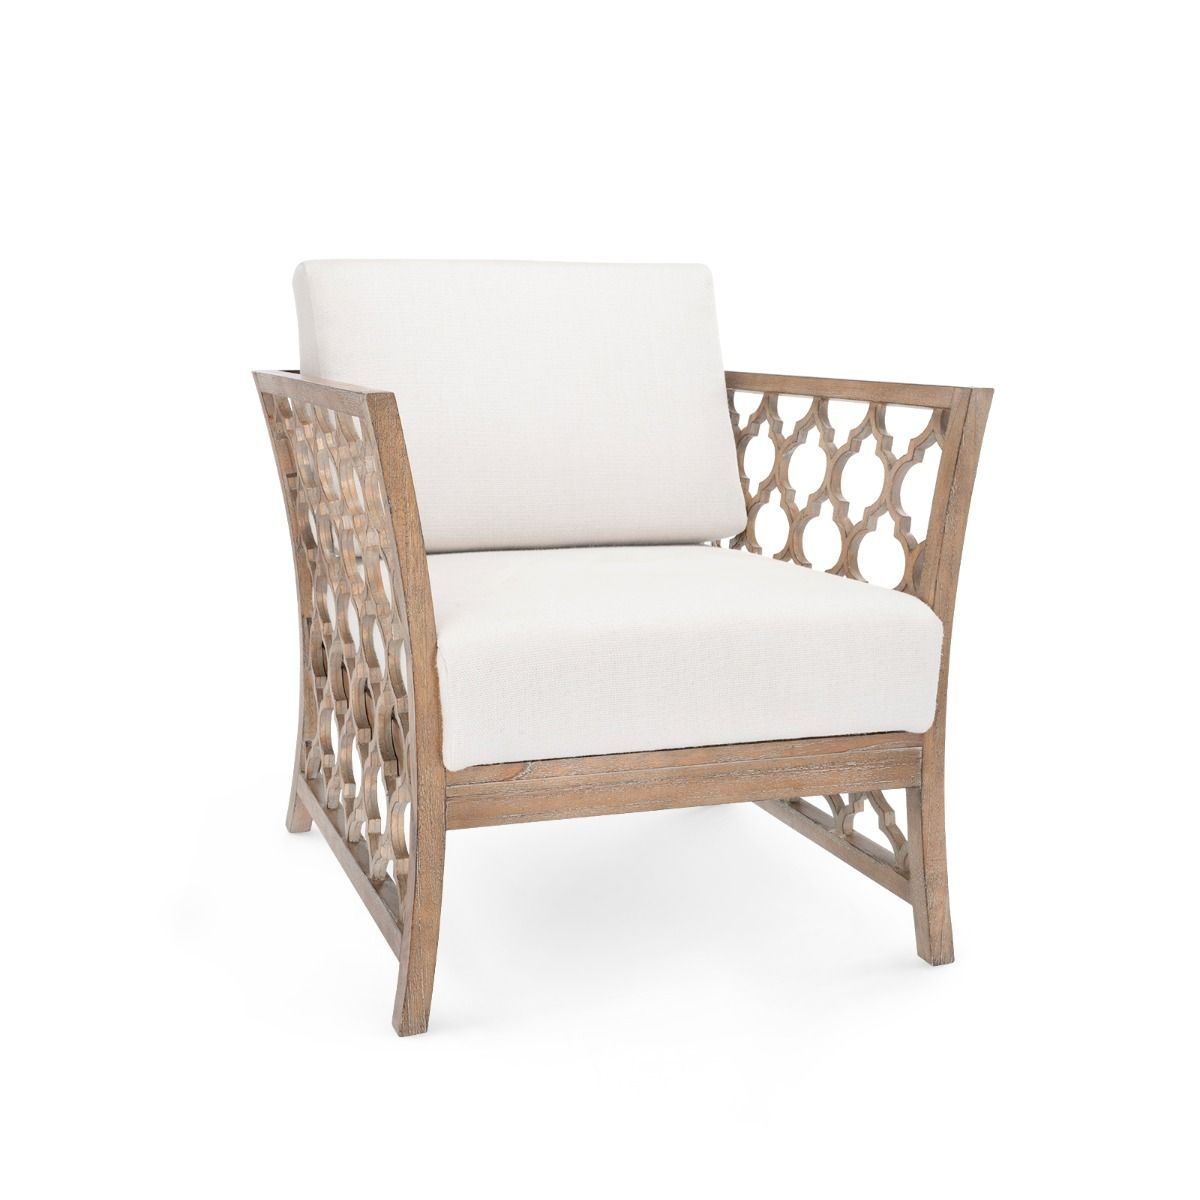 Bungalow 5 - PARKAN CLUB CHAIR, DRIFTWOOD-Bungalow 5-Blue Hand Home